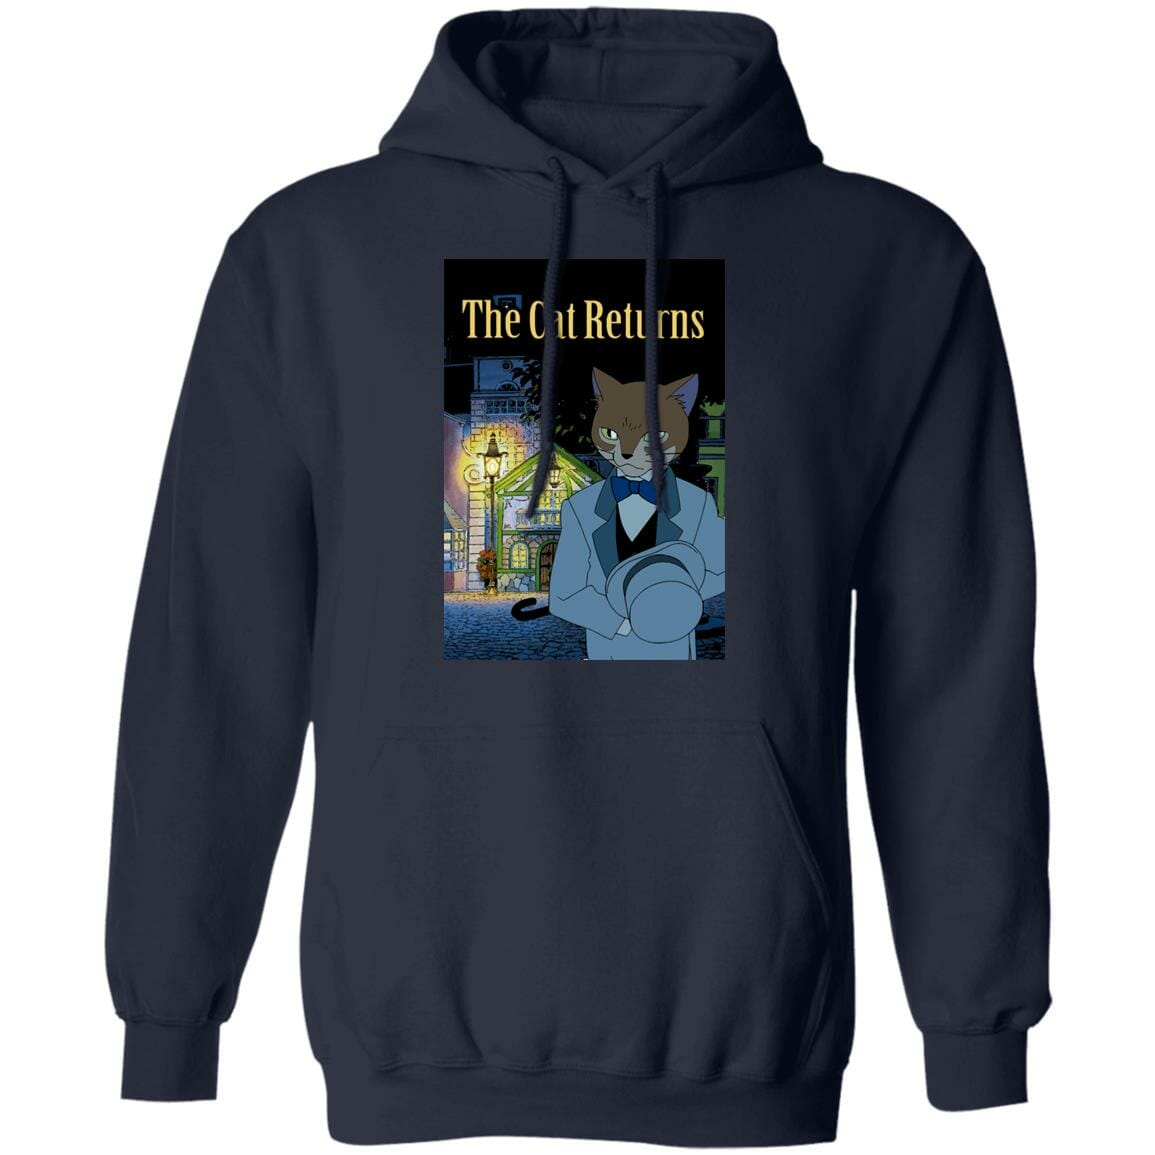 The Cat Returns Poster Hoodie Unisex